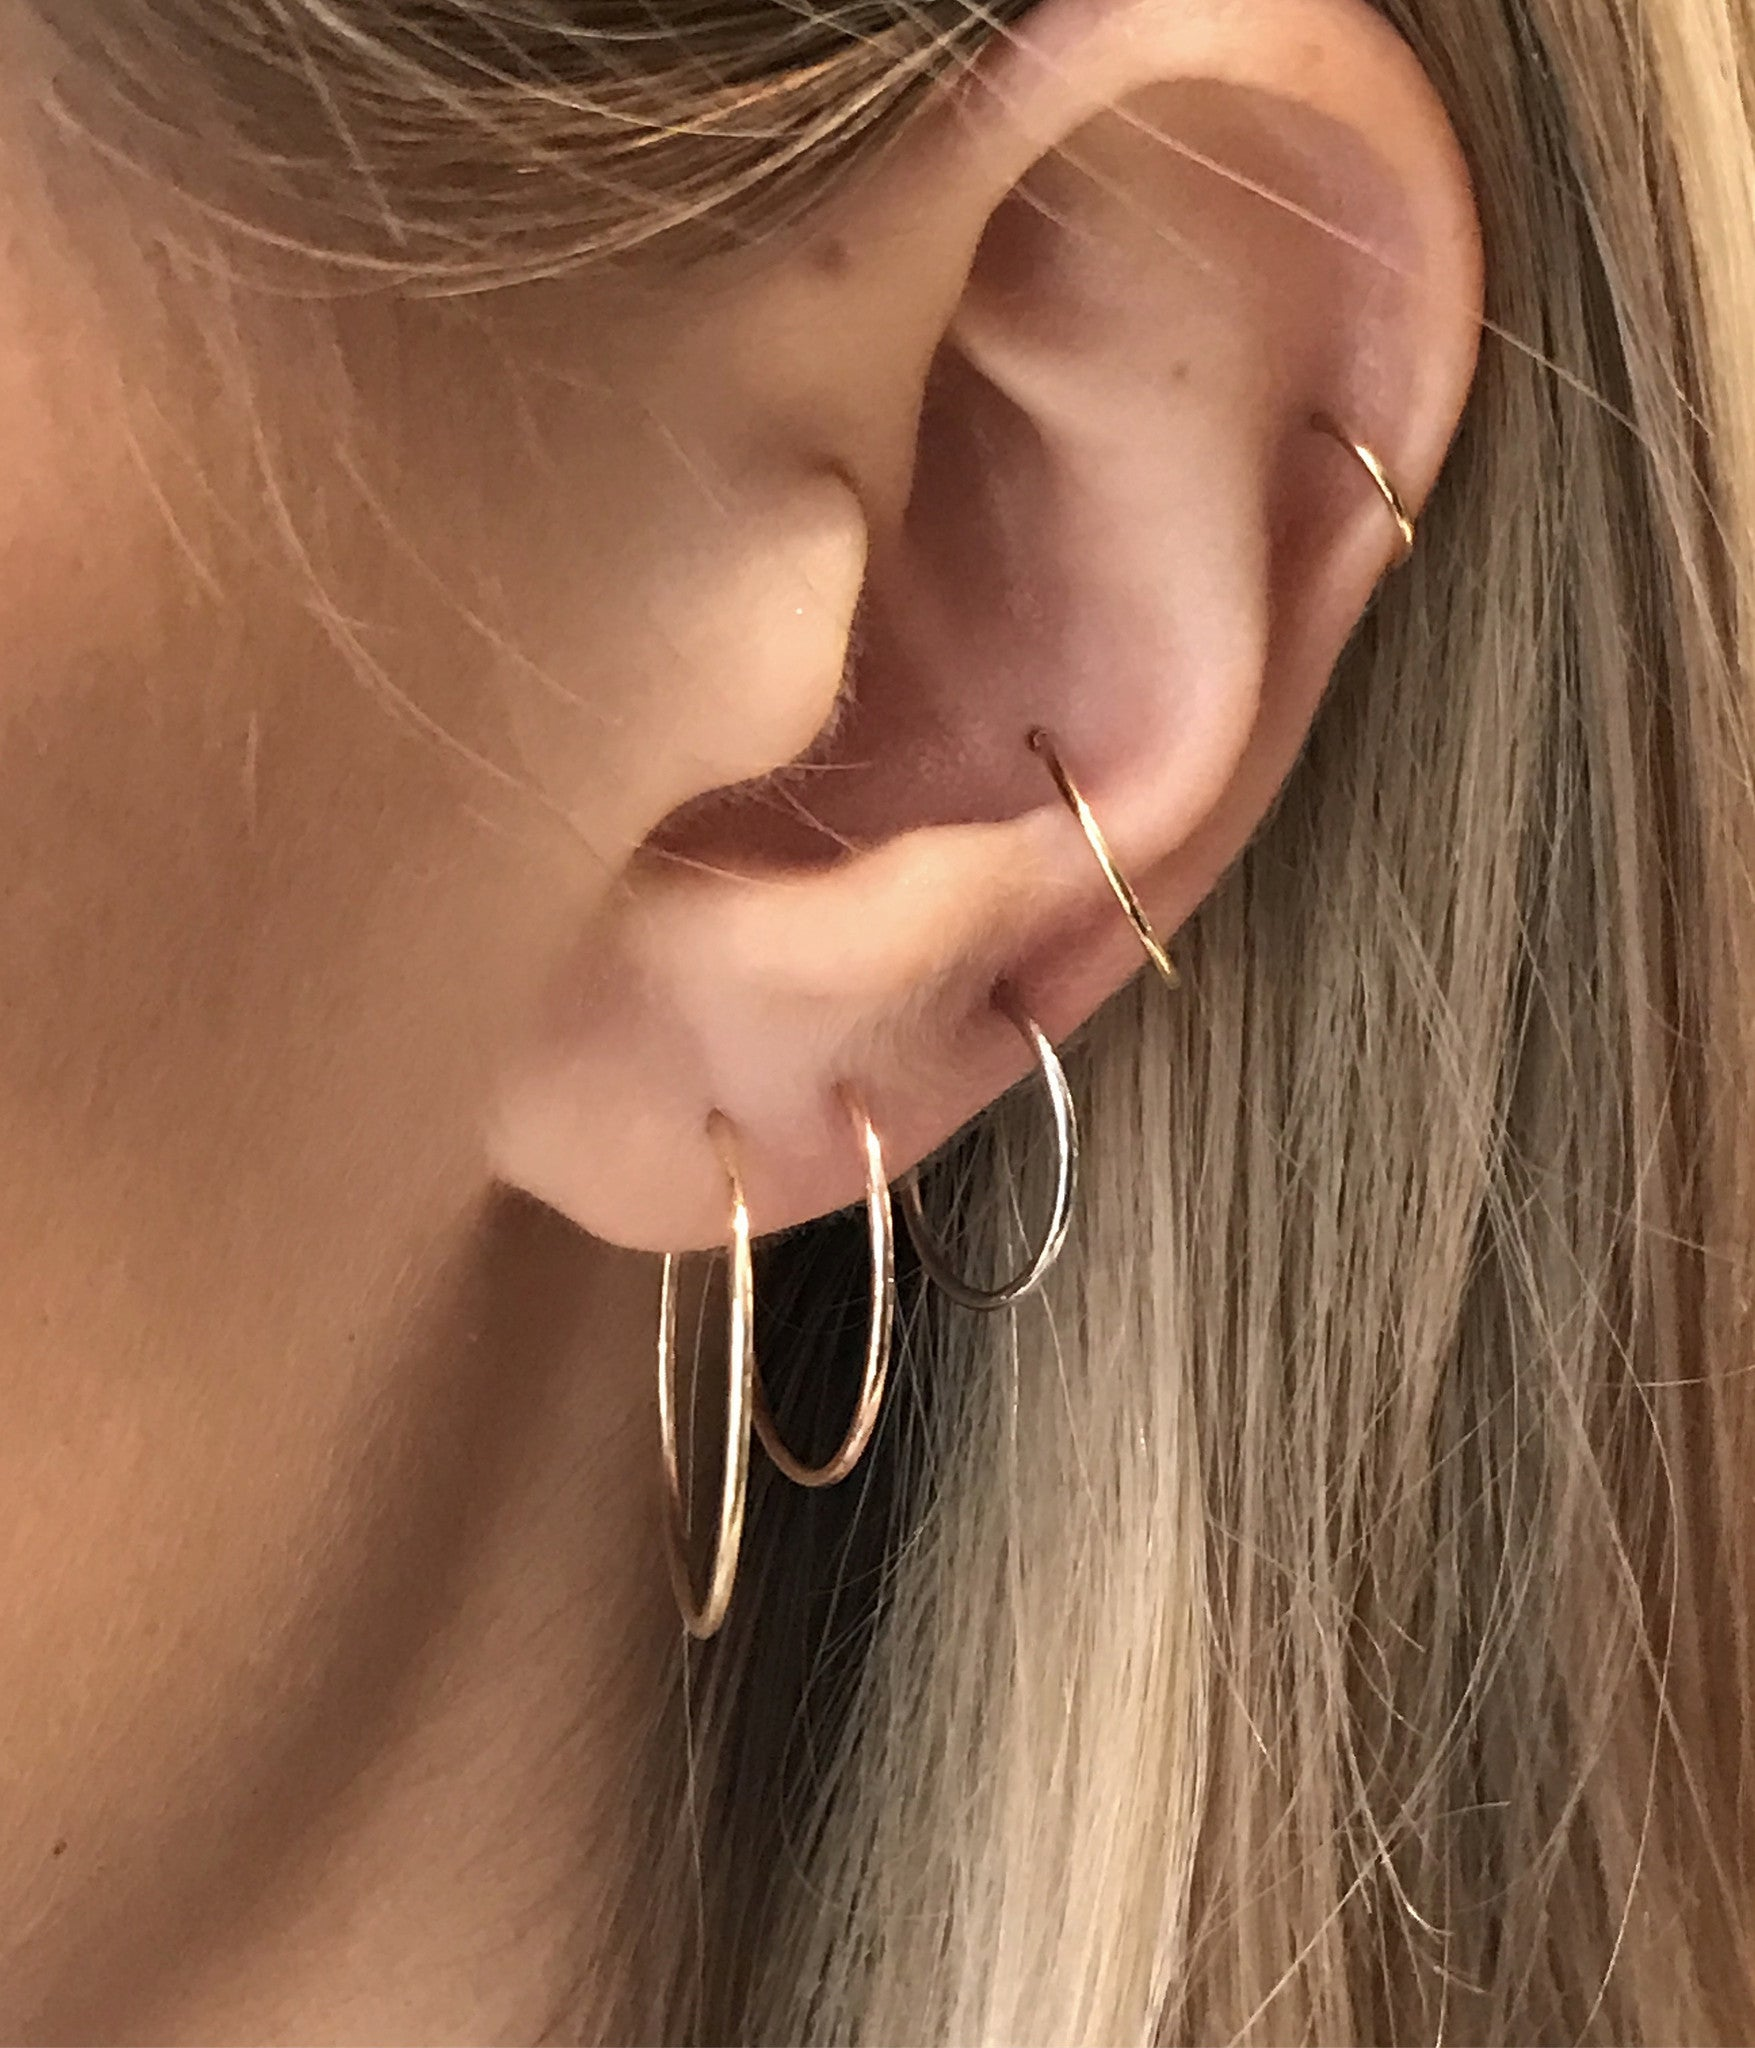 Hard Wire Hoop Single Earrings Wendy Nichol Fine Jewelry Designer Thin simple hoop Handmade in NYC solid 14k Gold Yellow Rose White First Second Ear Hole Piercing Lower Lobe Upper Lobe